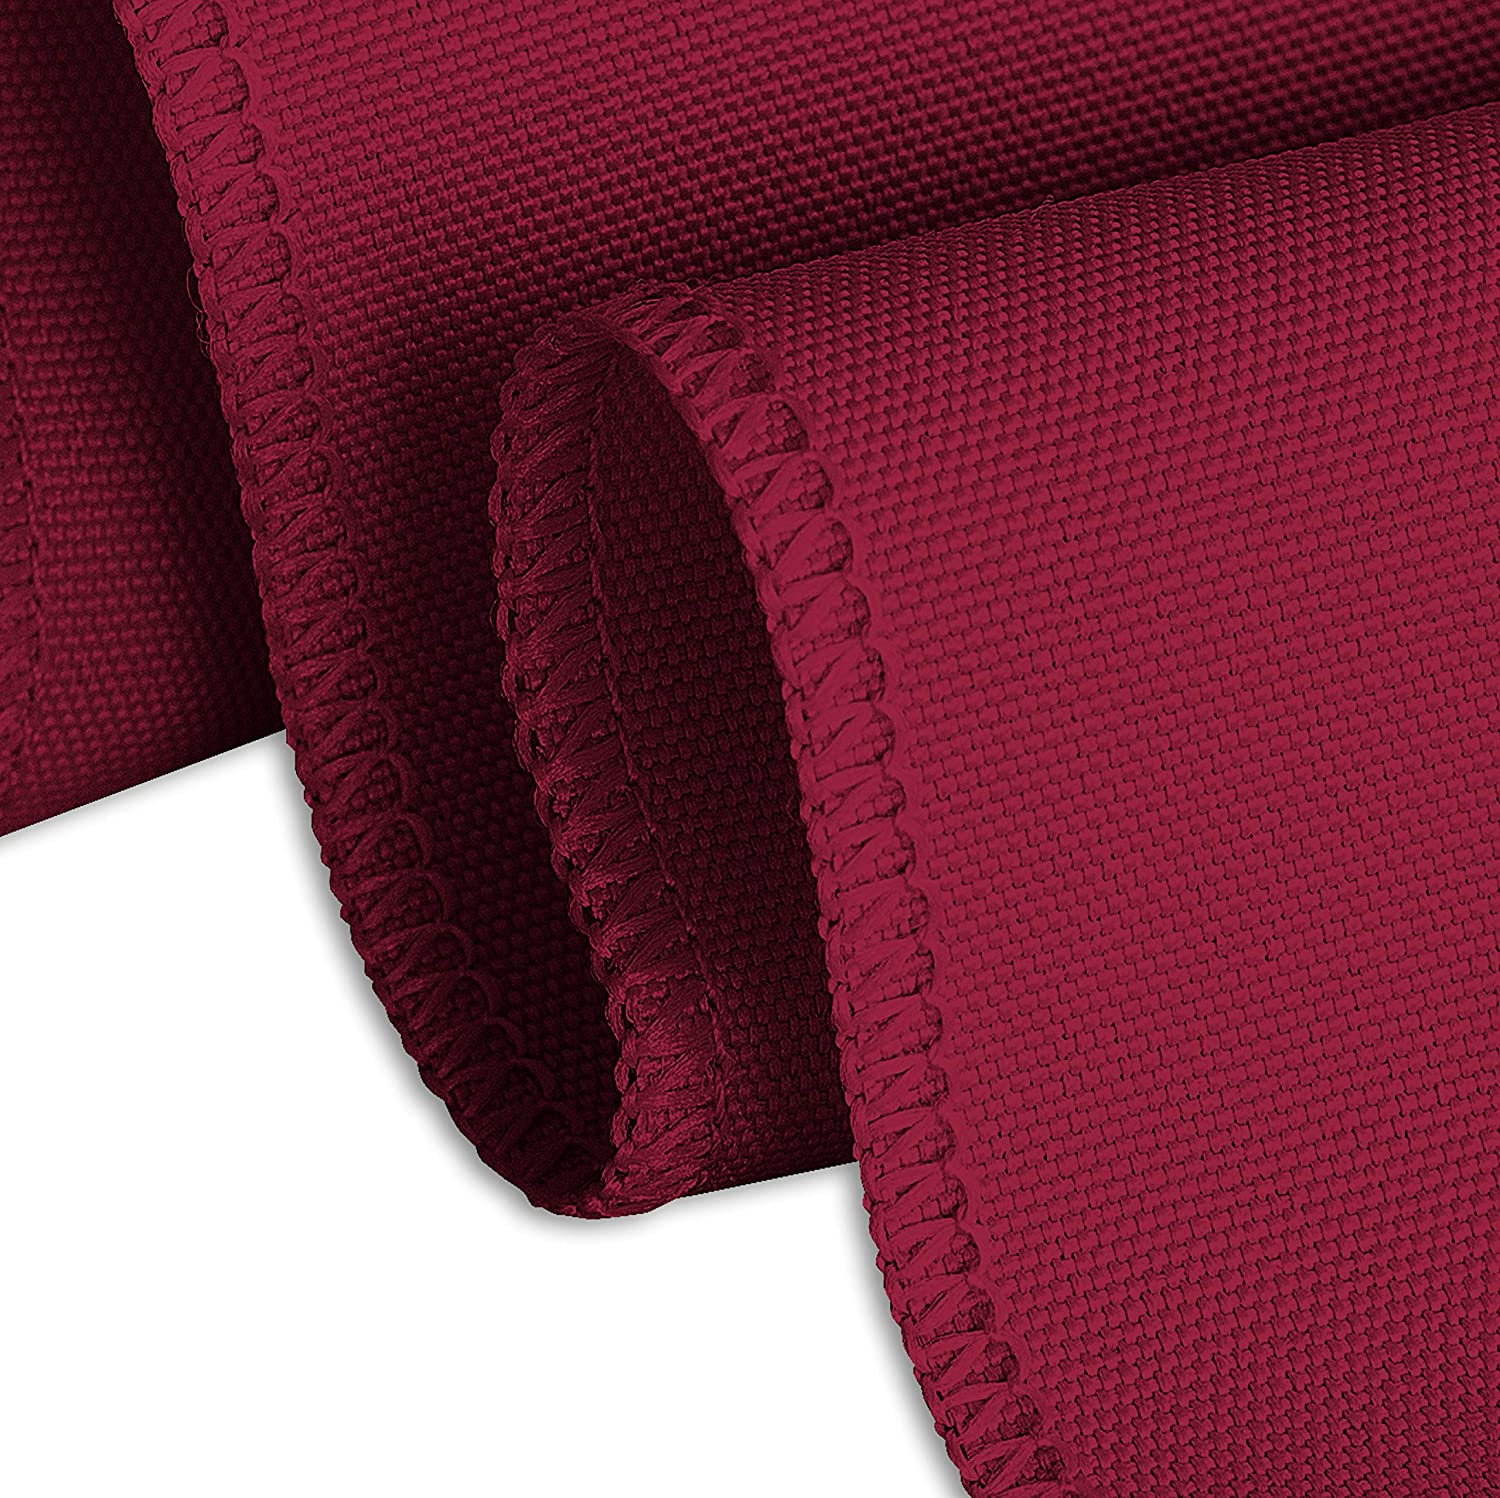 LinenTablecloth 14 ft Accordion Pleat Polyester Table Skirt Burgundy